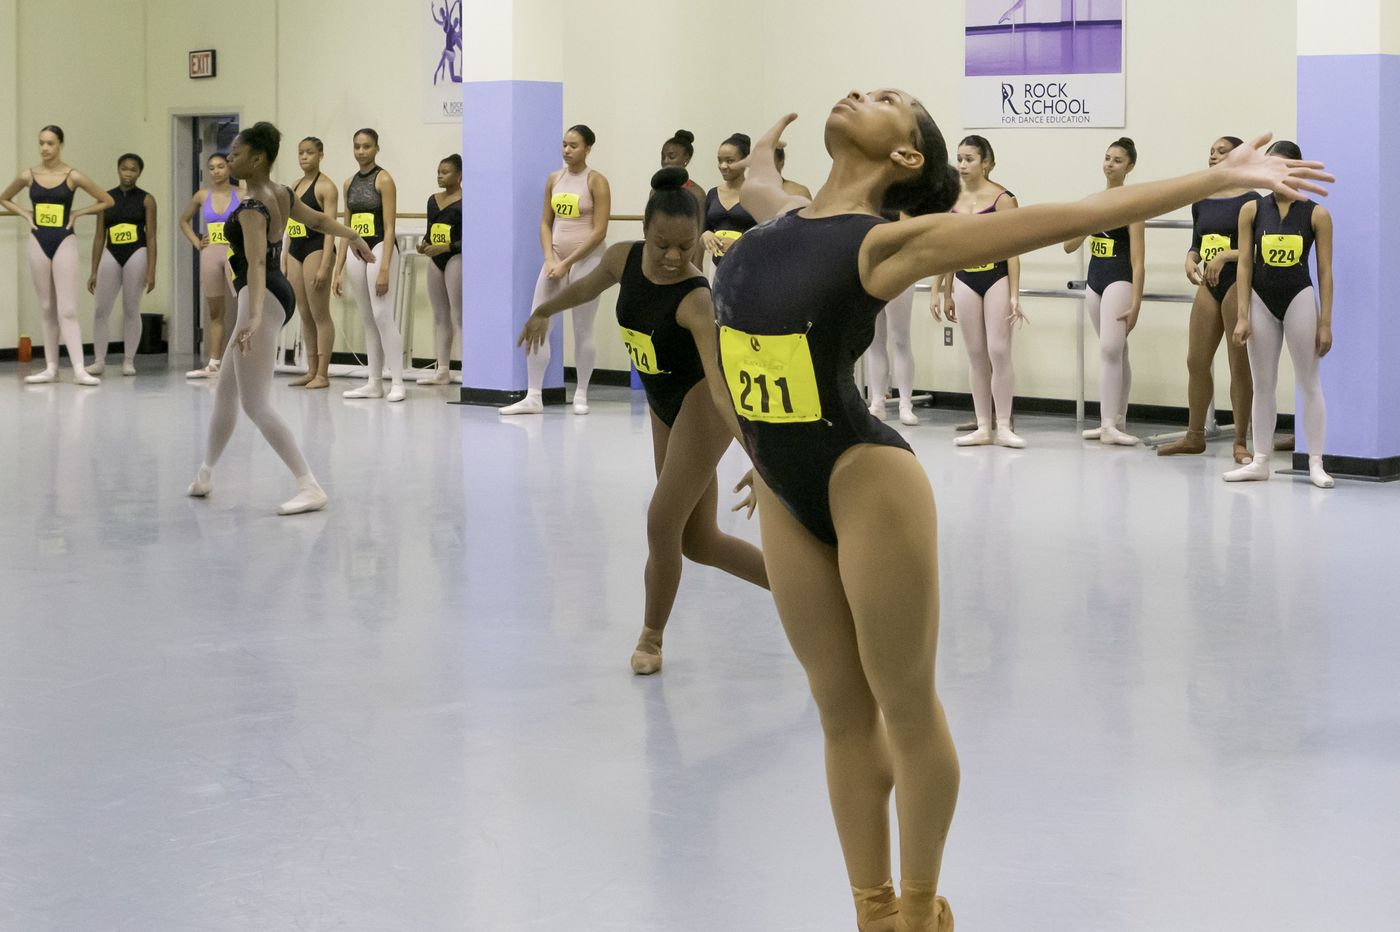 Young dancers of color audition for top ballet companies, schools in a special Philly opportunity